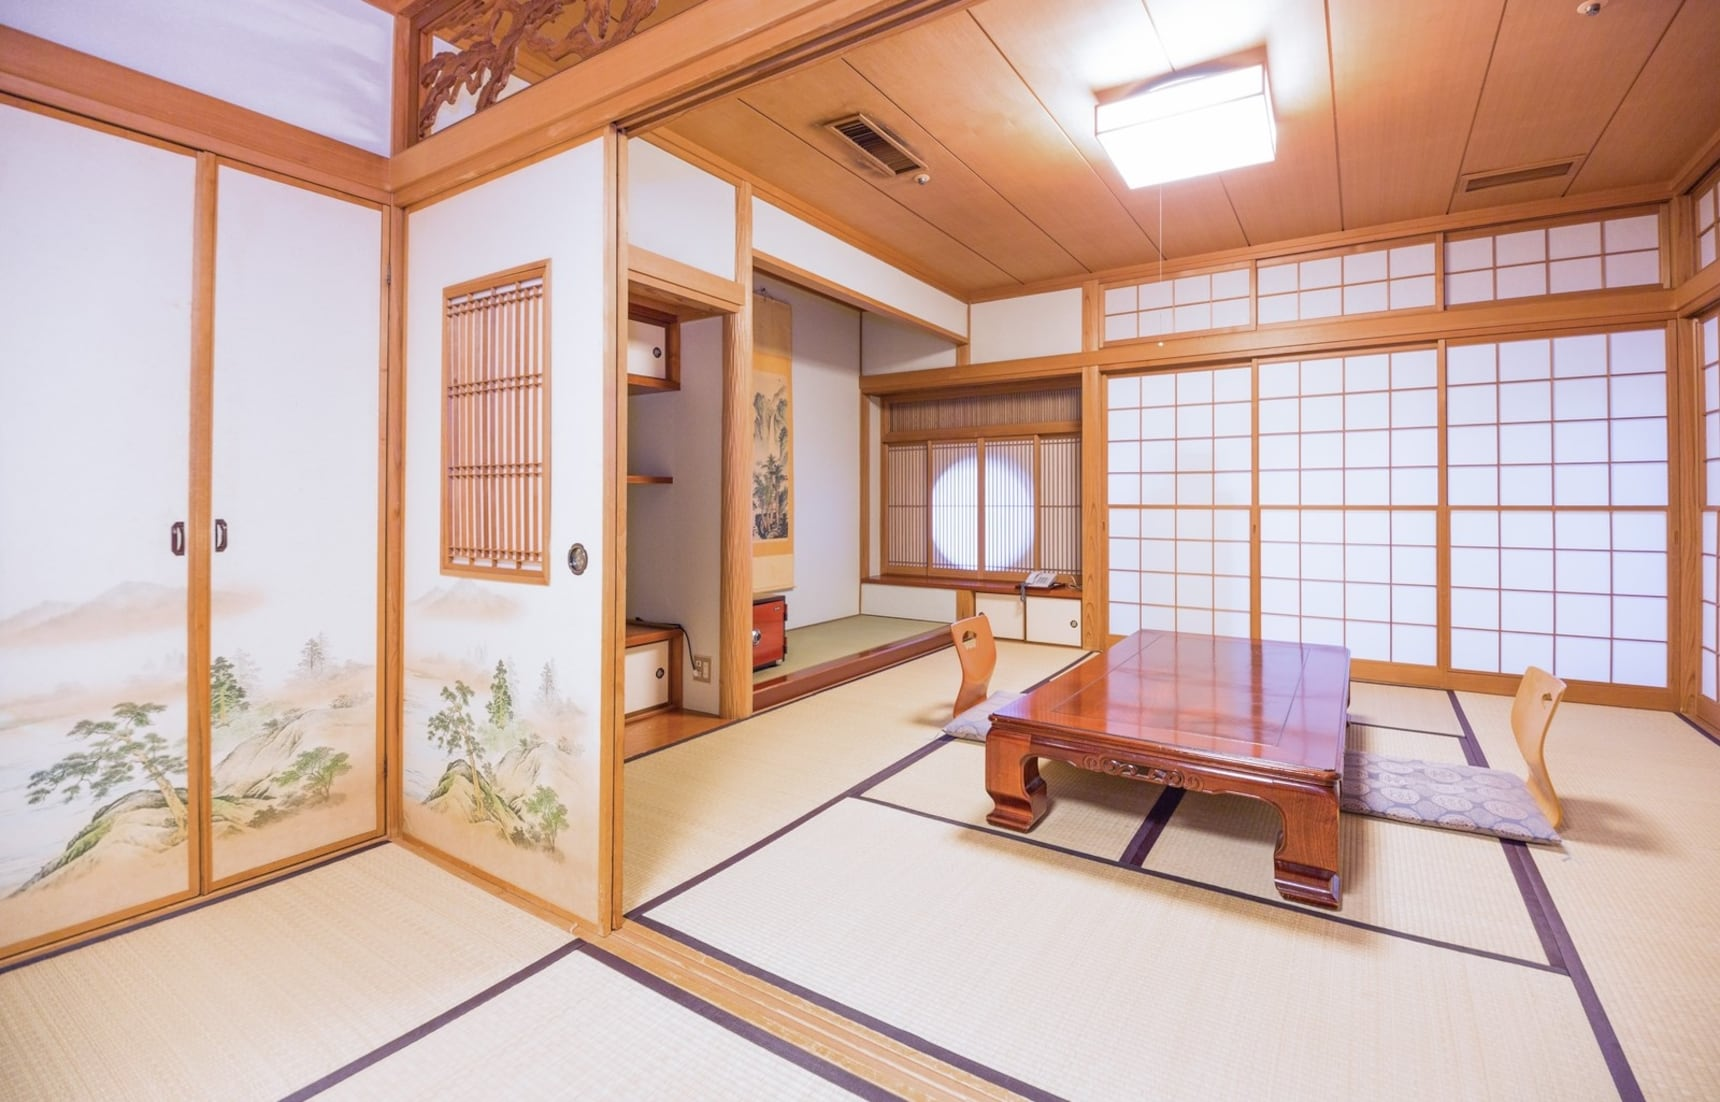 TripAdvisor's Top 10 Ryokan of 2017